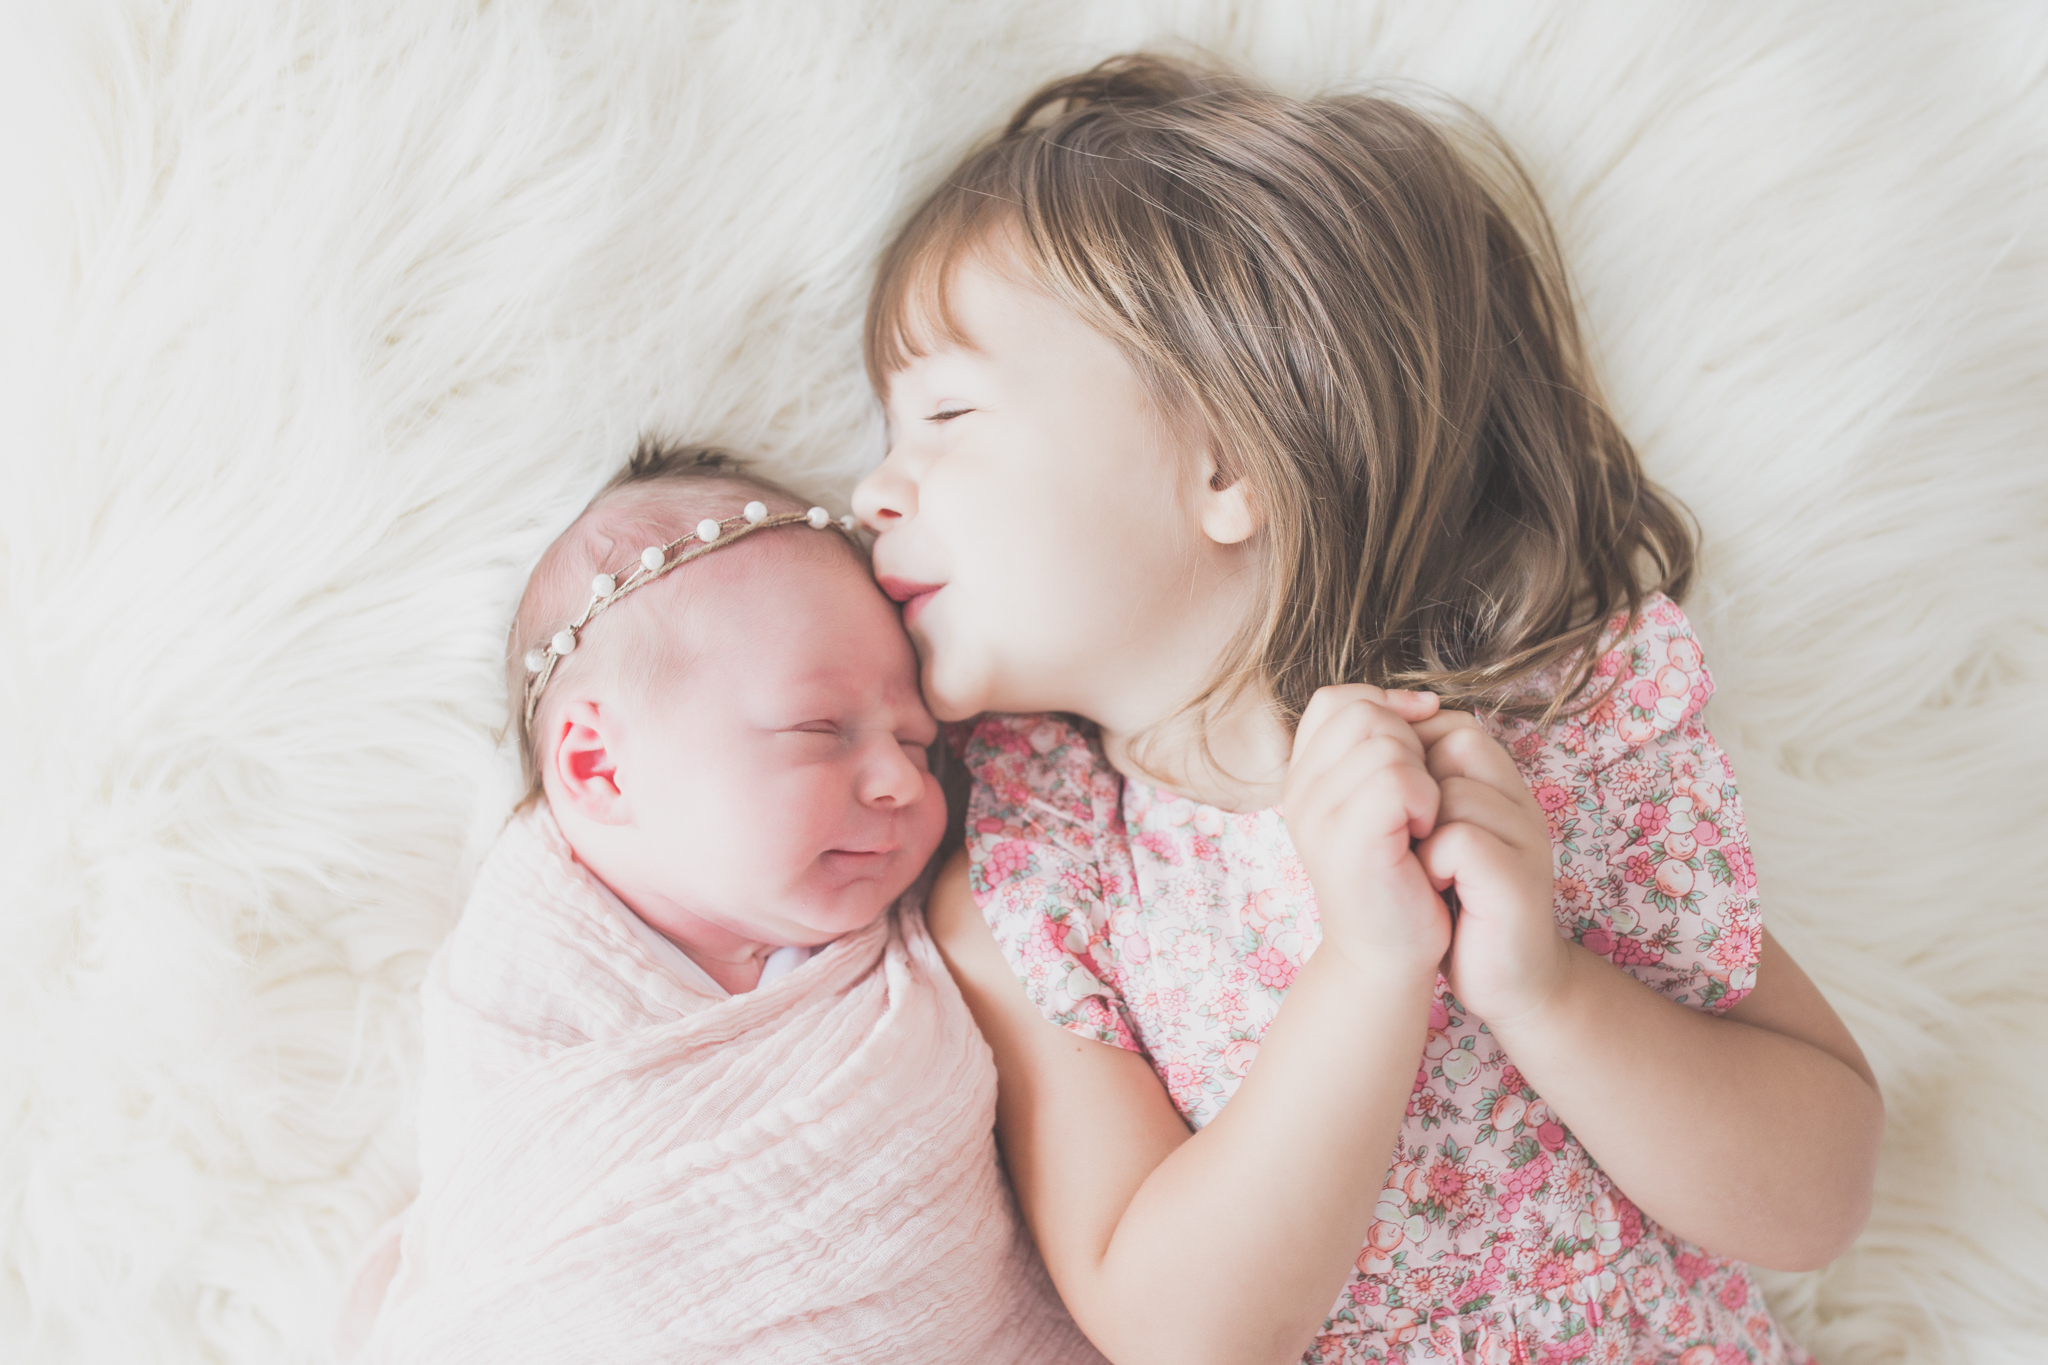 Sibling photos Newborn session photographer lifestyle studio - Cara Peterson Photography Rockford IL-7-5.jpg